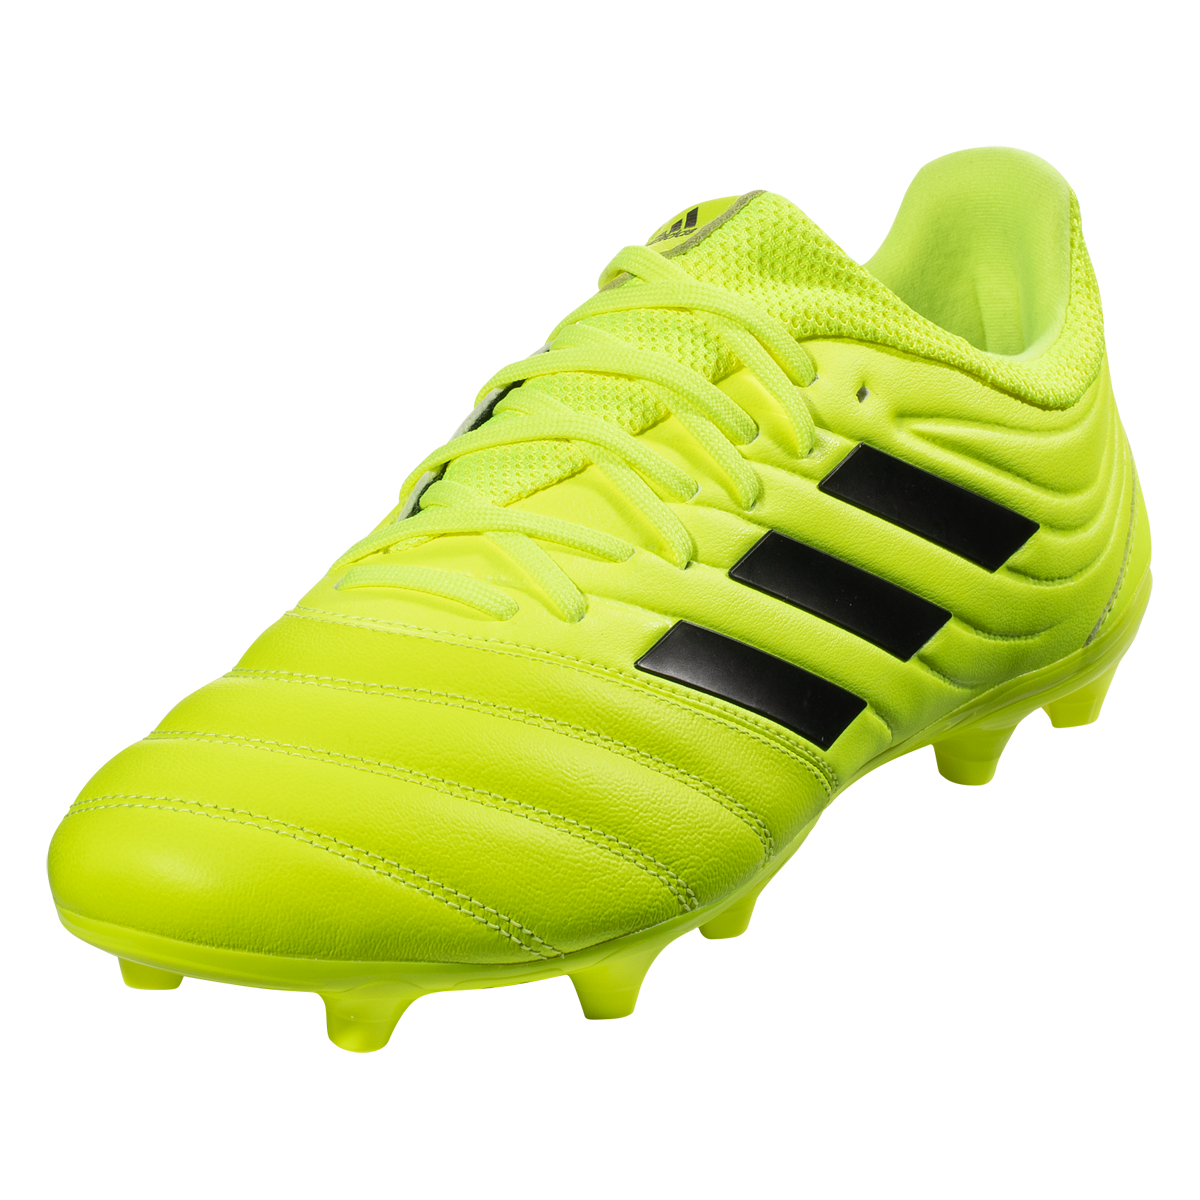 d770ac6bc92 adidas Copa 19.3 FG Firm Ground Soccer Cleat Solar Yellow/Black ...